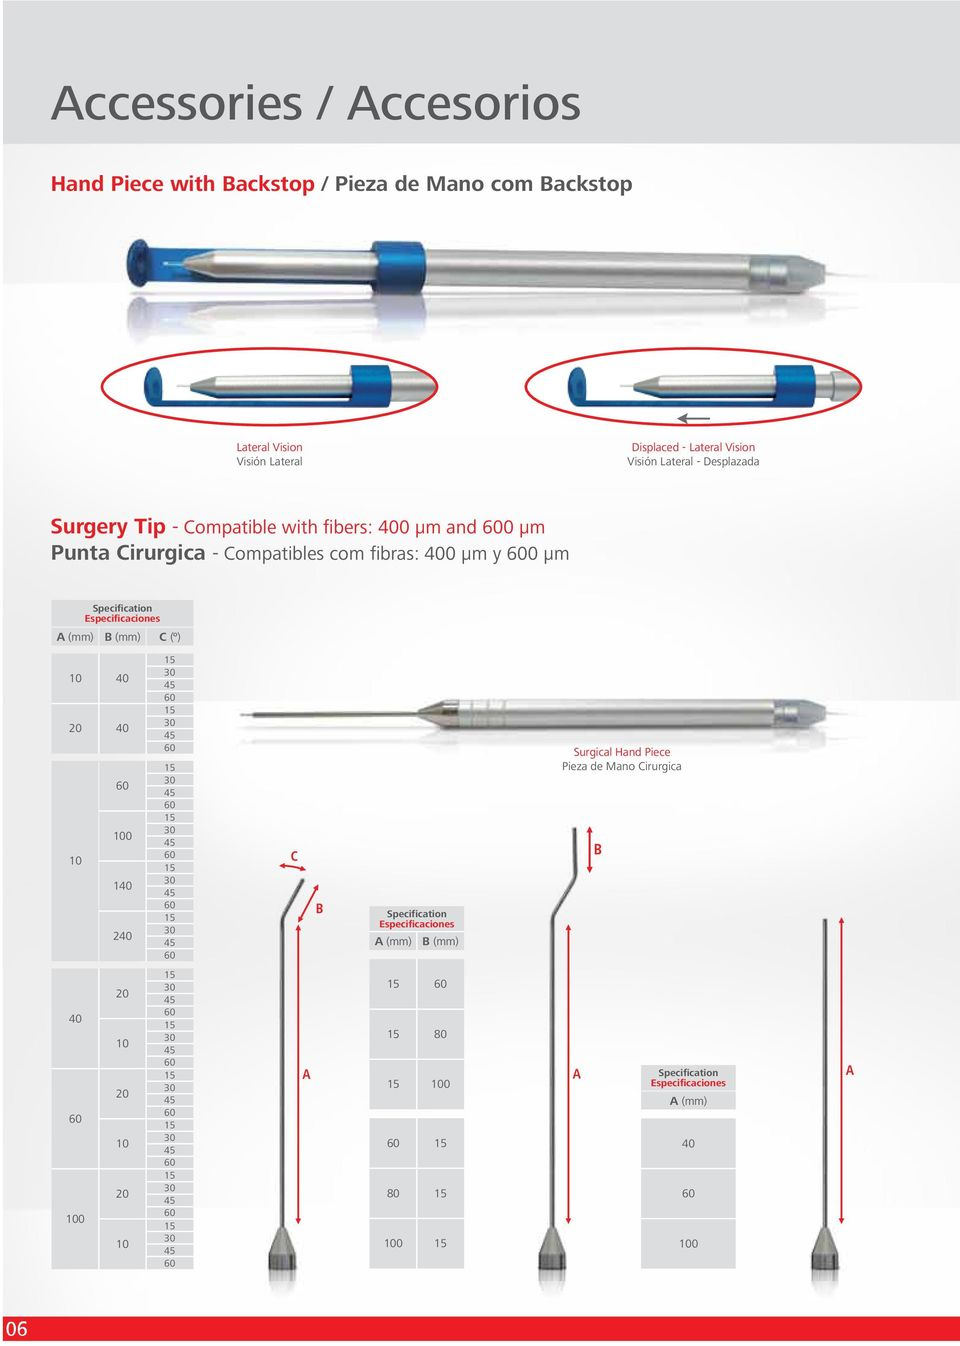 A (mm) B (mm) C (º) 10 40 20 40 100 10 140 240 30 45 30 45 30 45 30 45 30 45 30 45 C B Specification Especificaciones A (mm) B (mm) Surgical Hand Piece